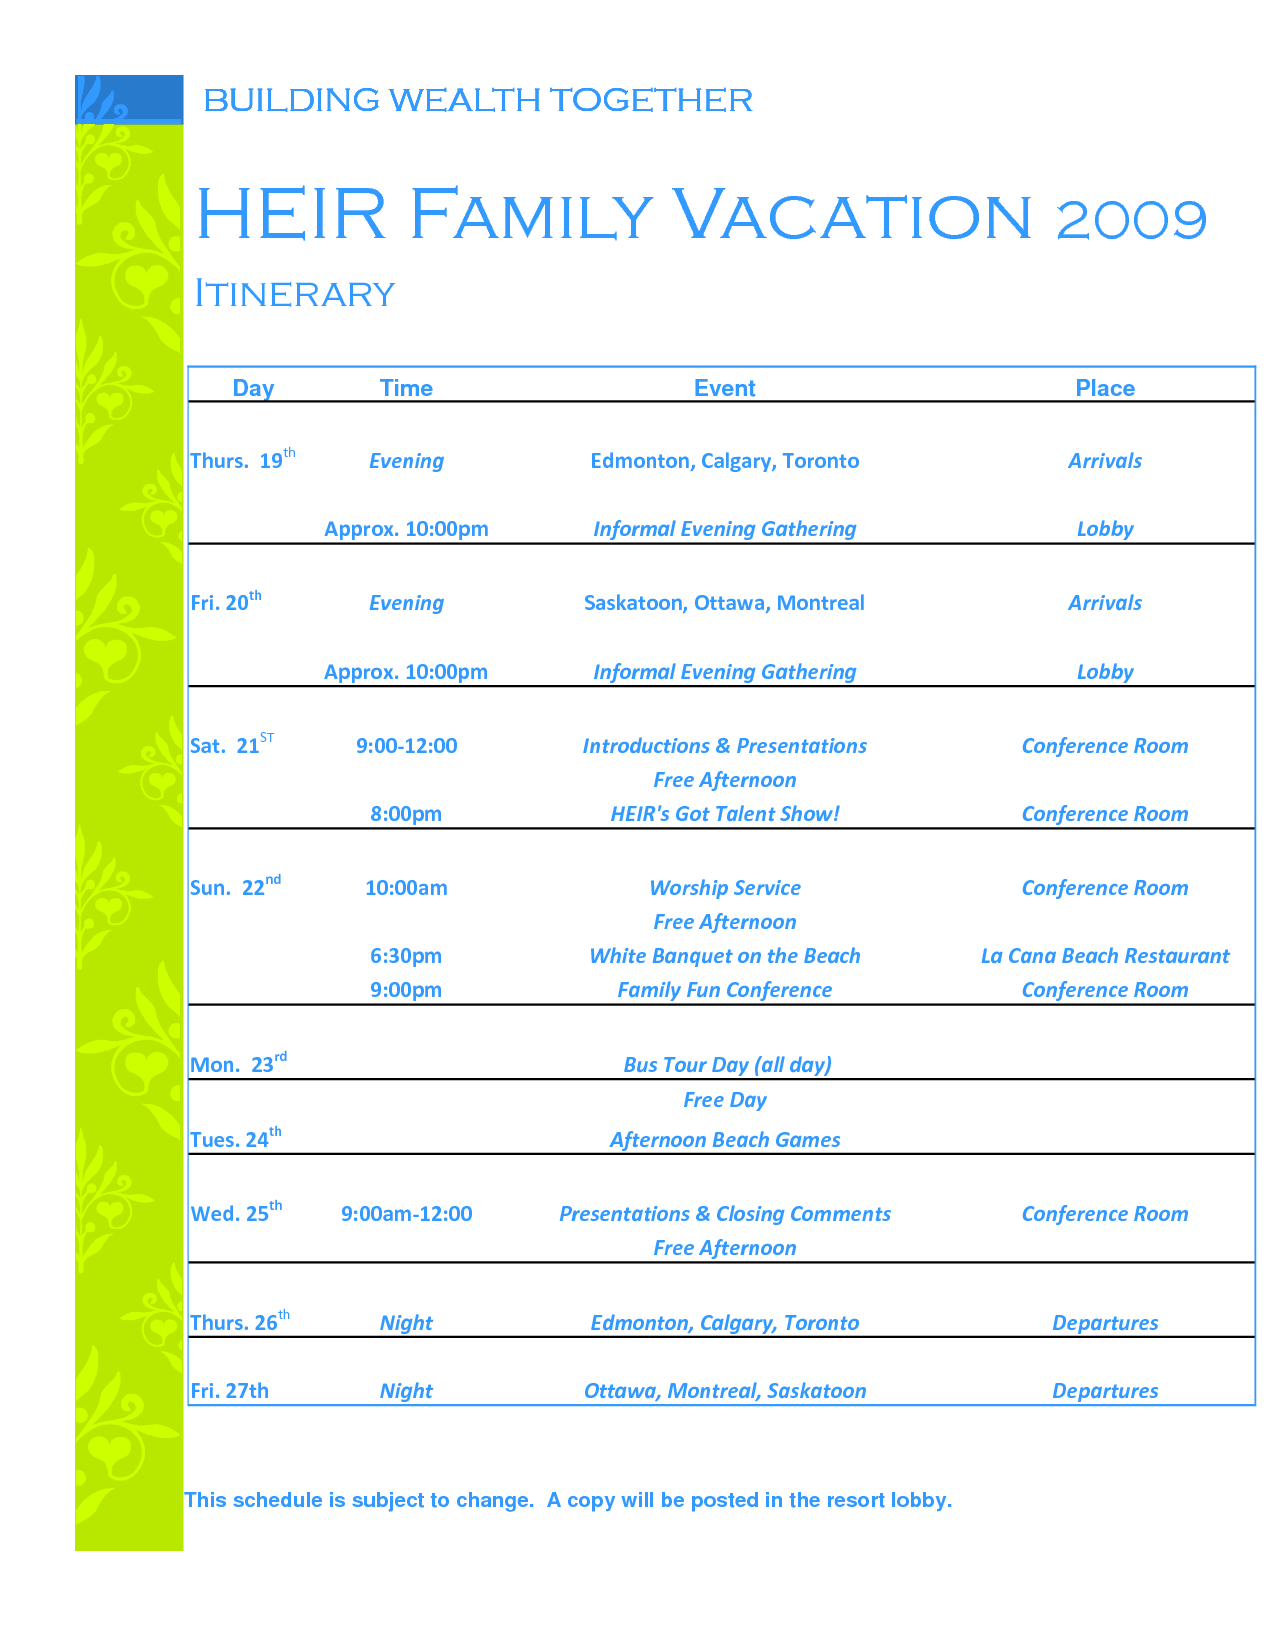 Family Vacation Itinerary Template Sishjrcr | aplg planetariums.org